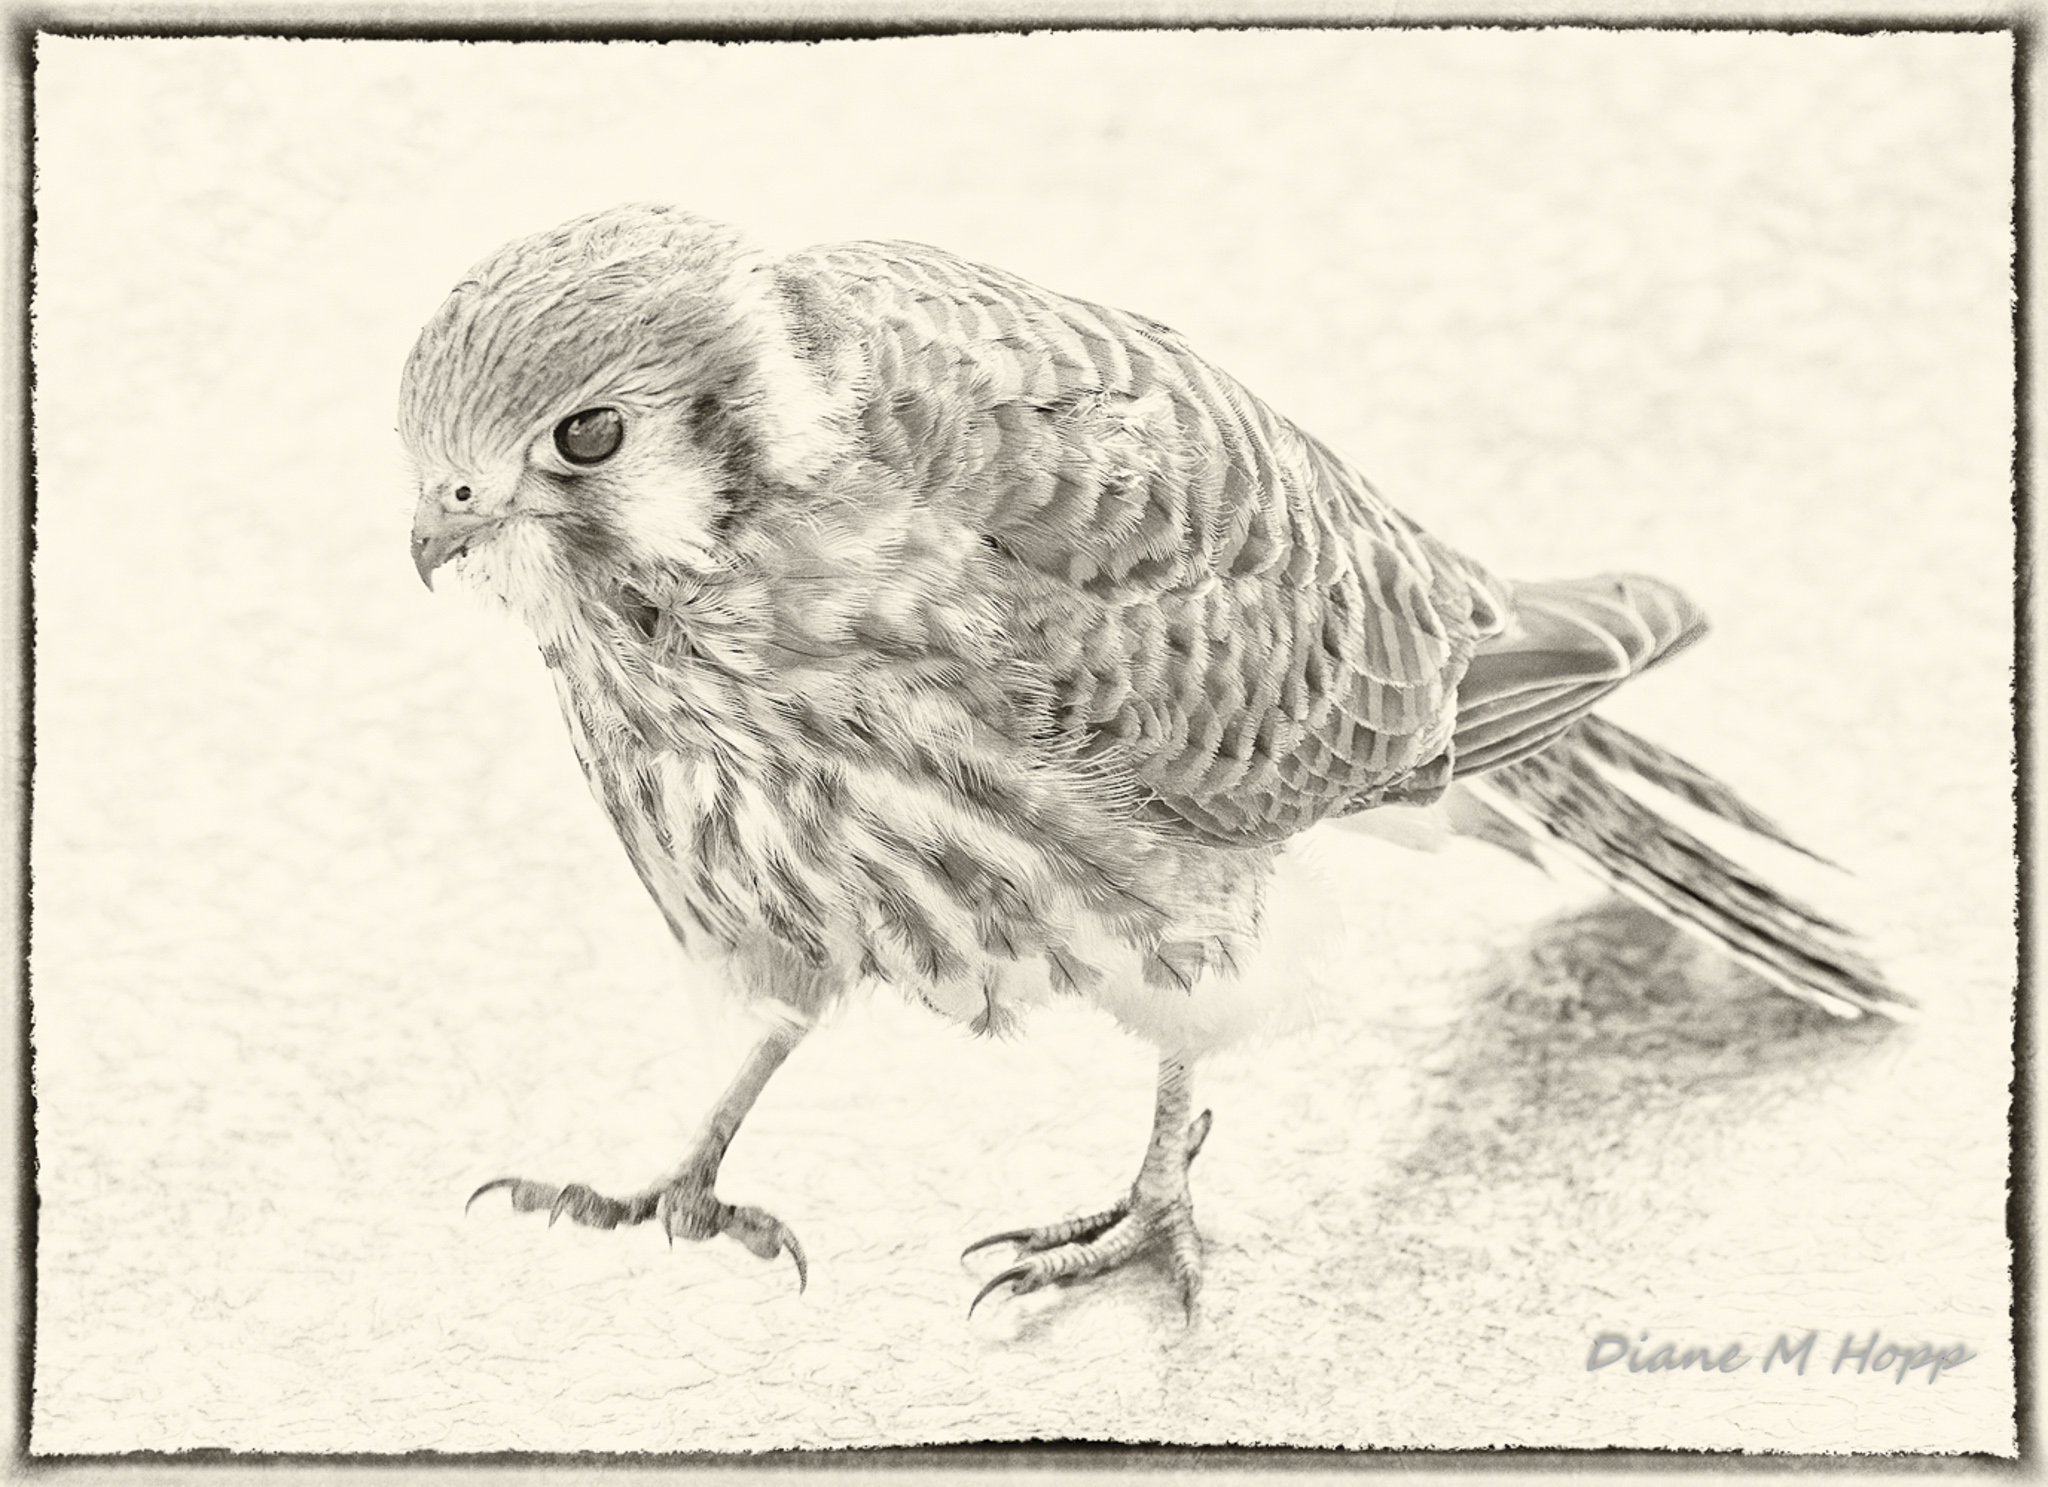 Surprise Visitor - American Kestral on the Porch - DMHopp